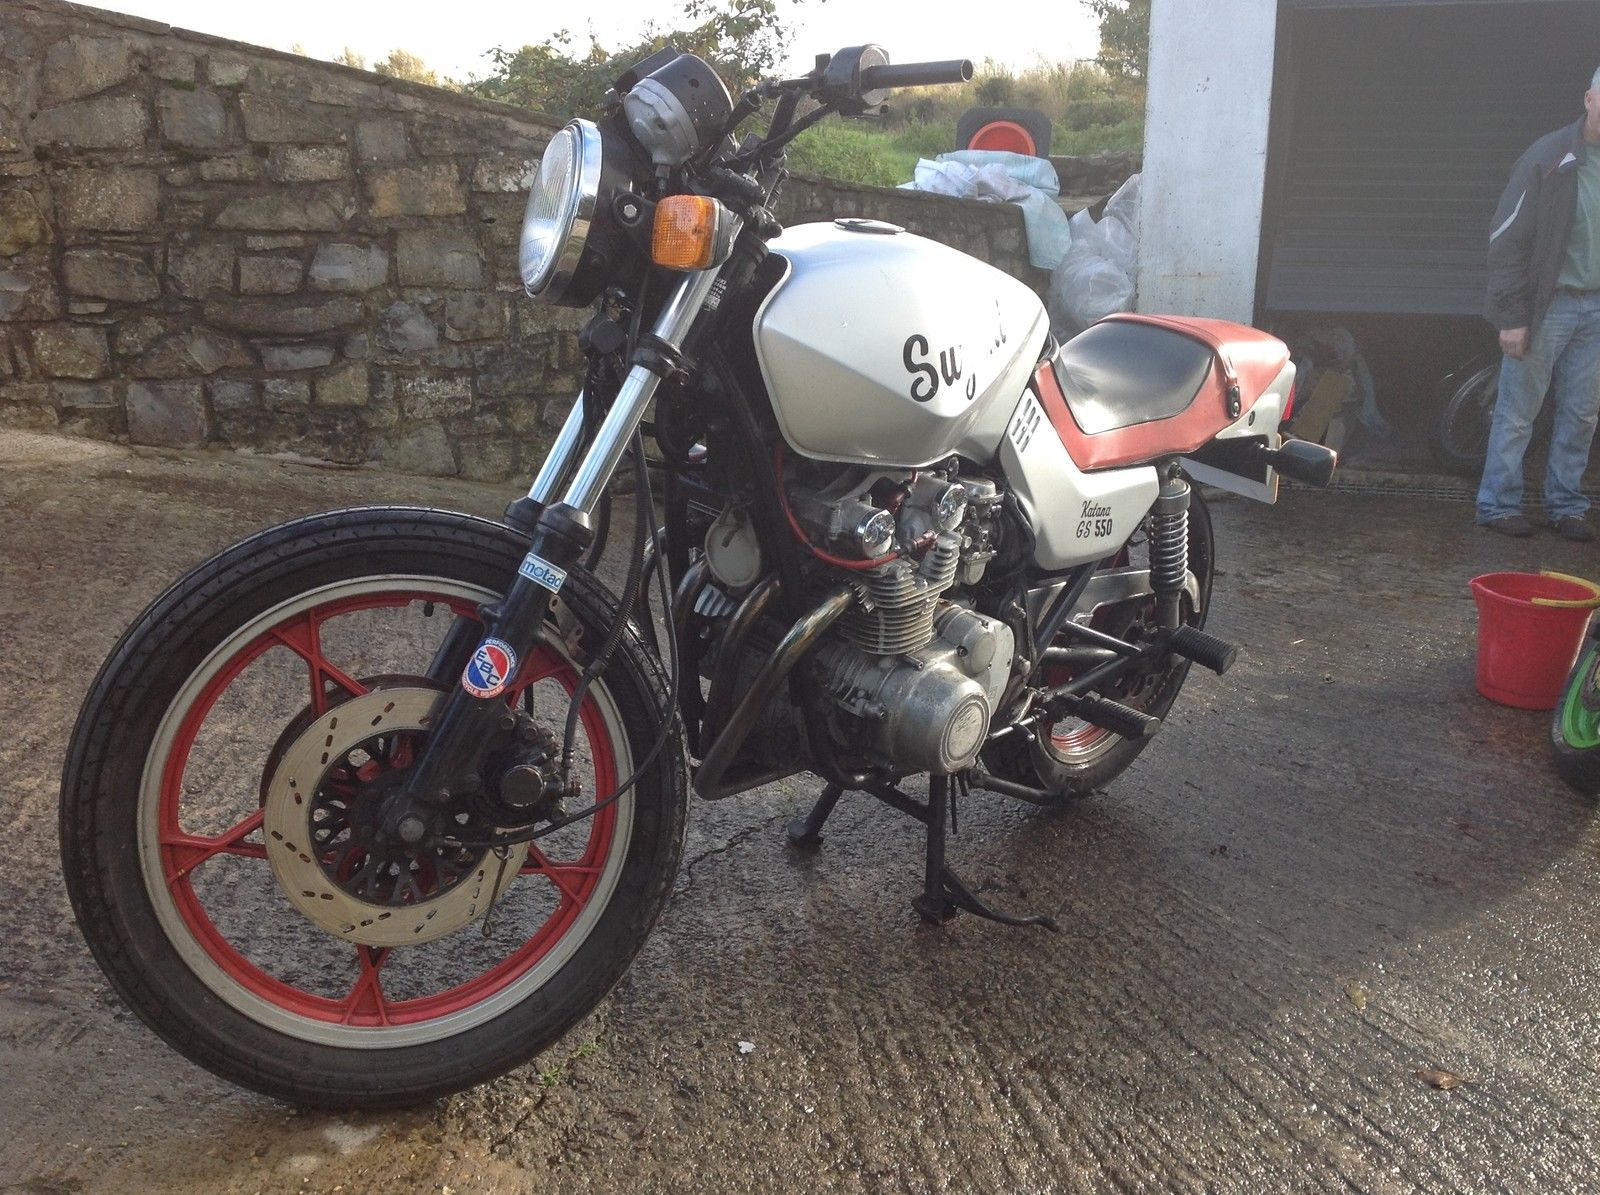 Suzuki GS550 MX Katanas (x2 bikes for sale)